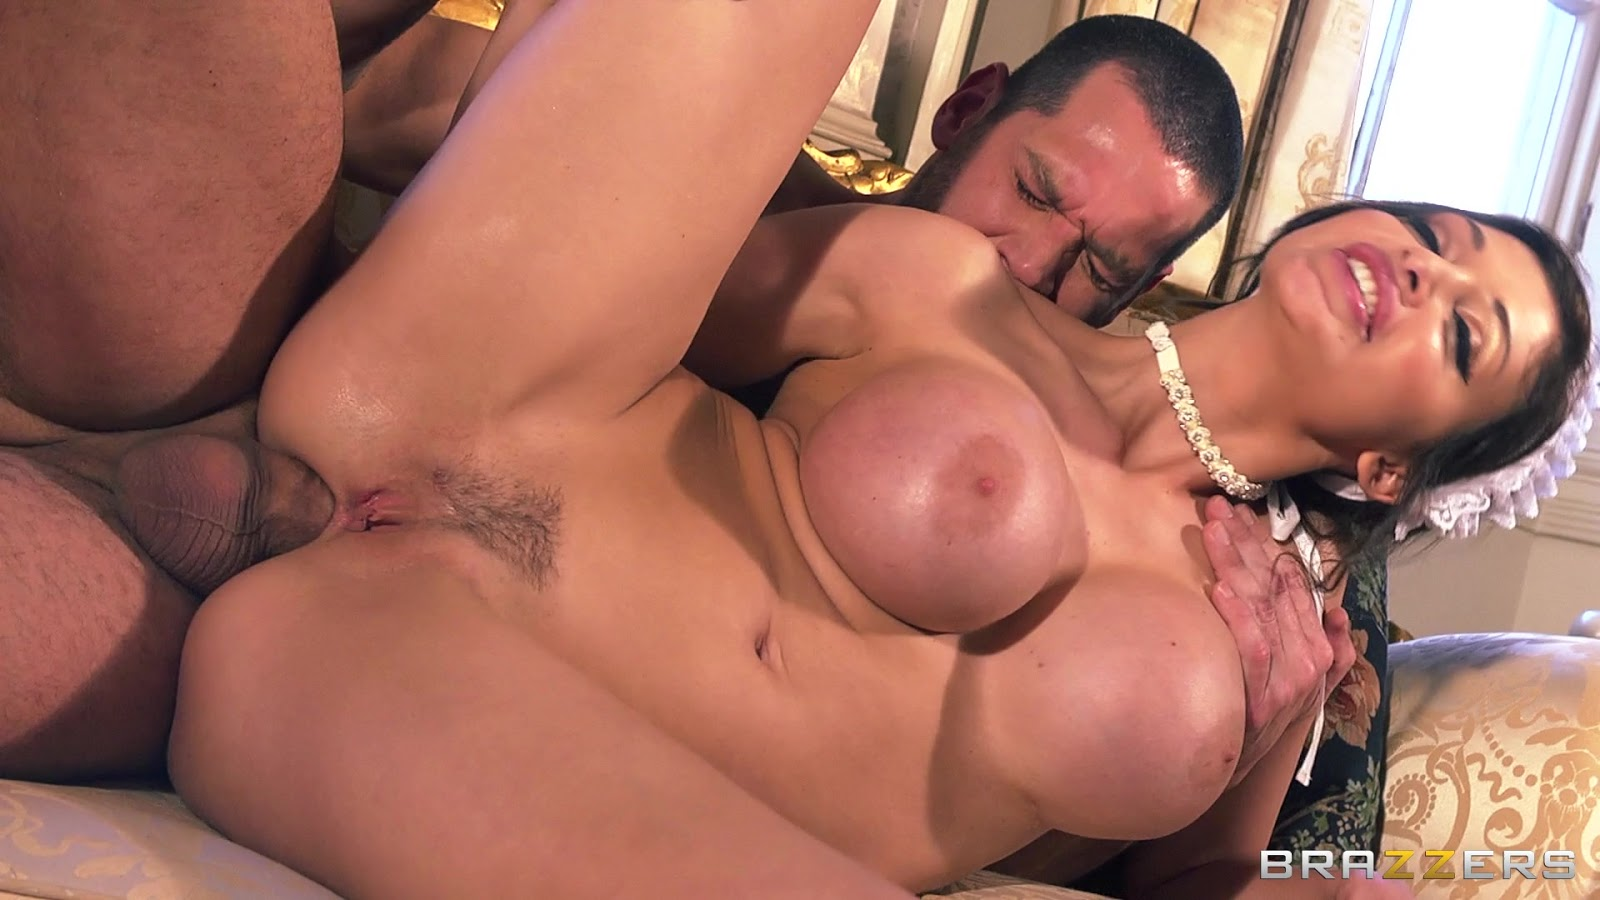 watch-sex-videos-stallone-pornvideo-home